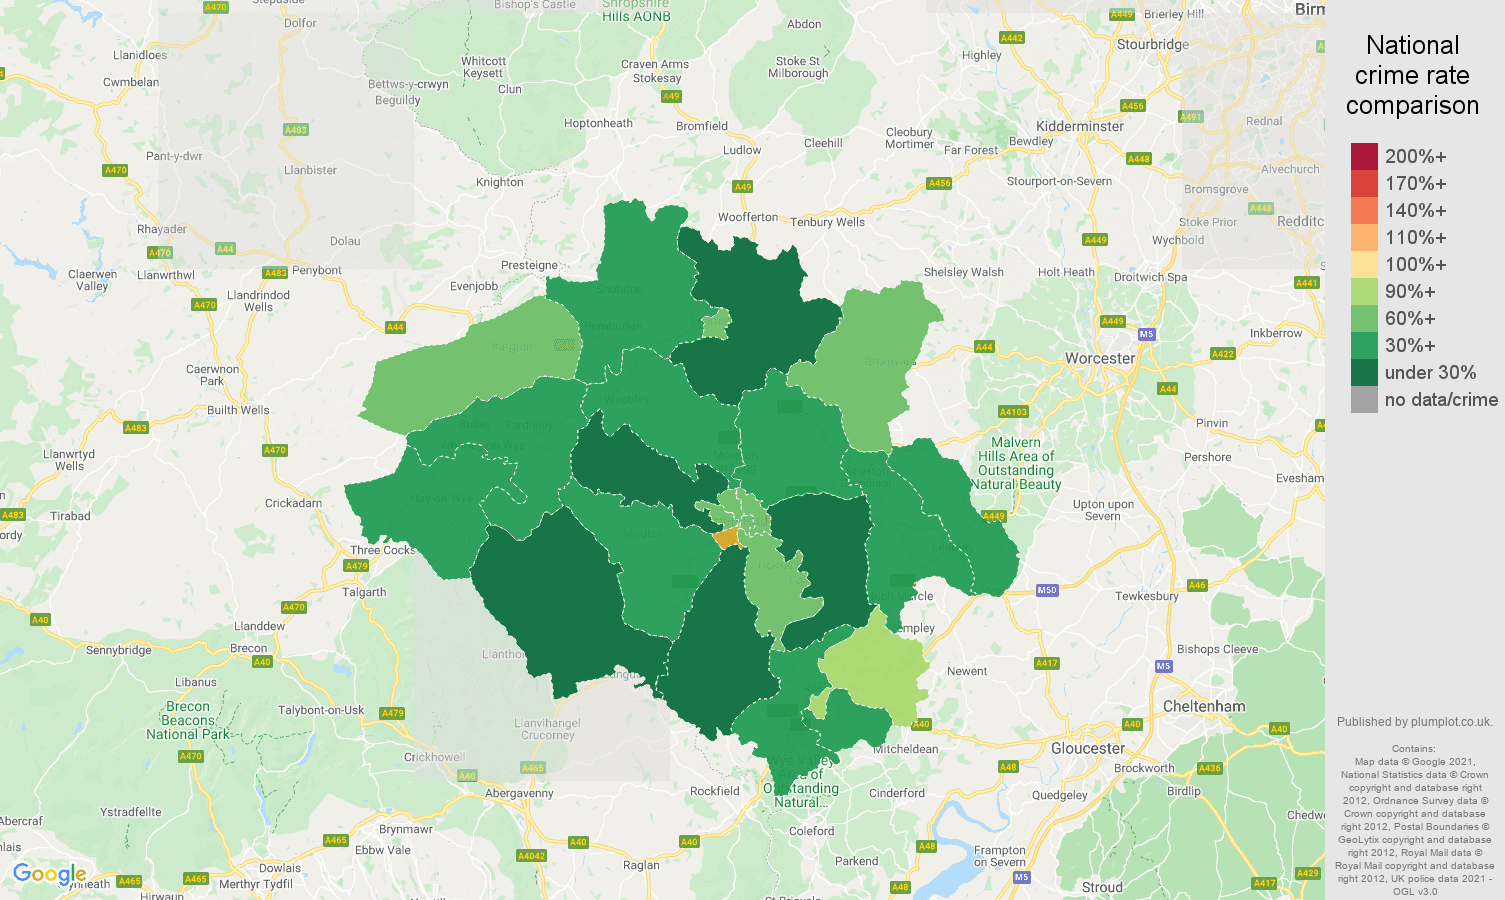 Hereford antisocial behaviour crime rate comparison map